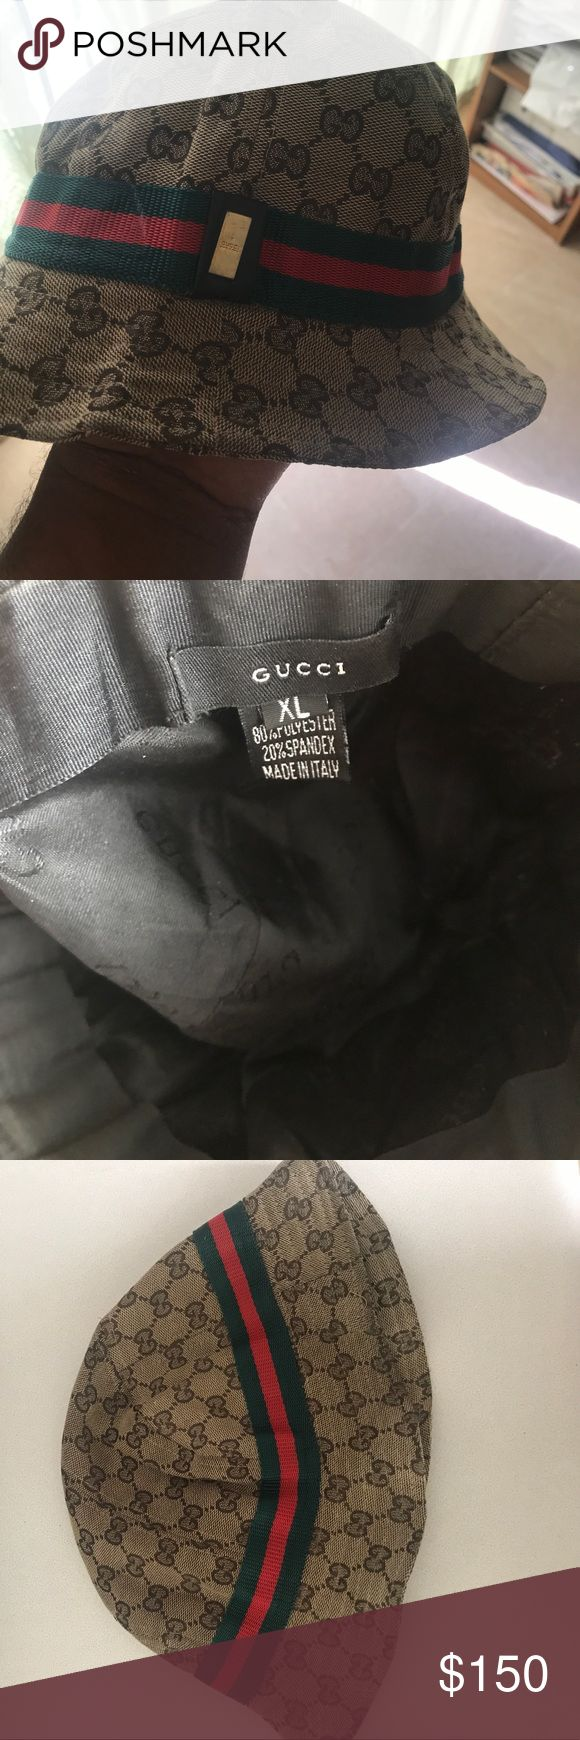 """Gucci Bucket hat """"Used"""" but not abused Accessories Hats"""